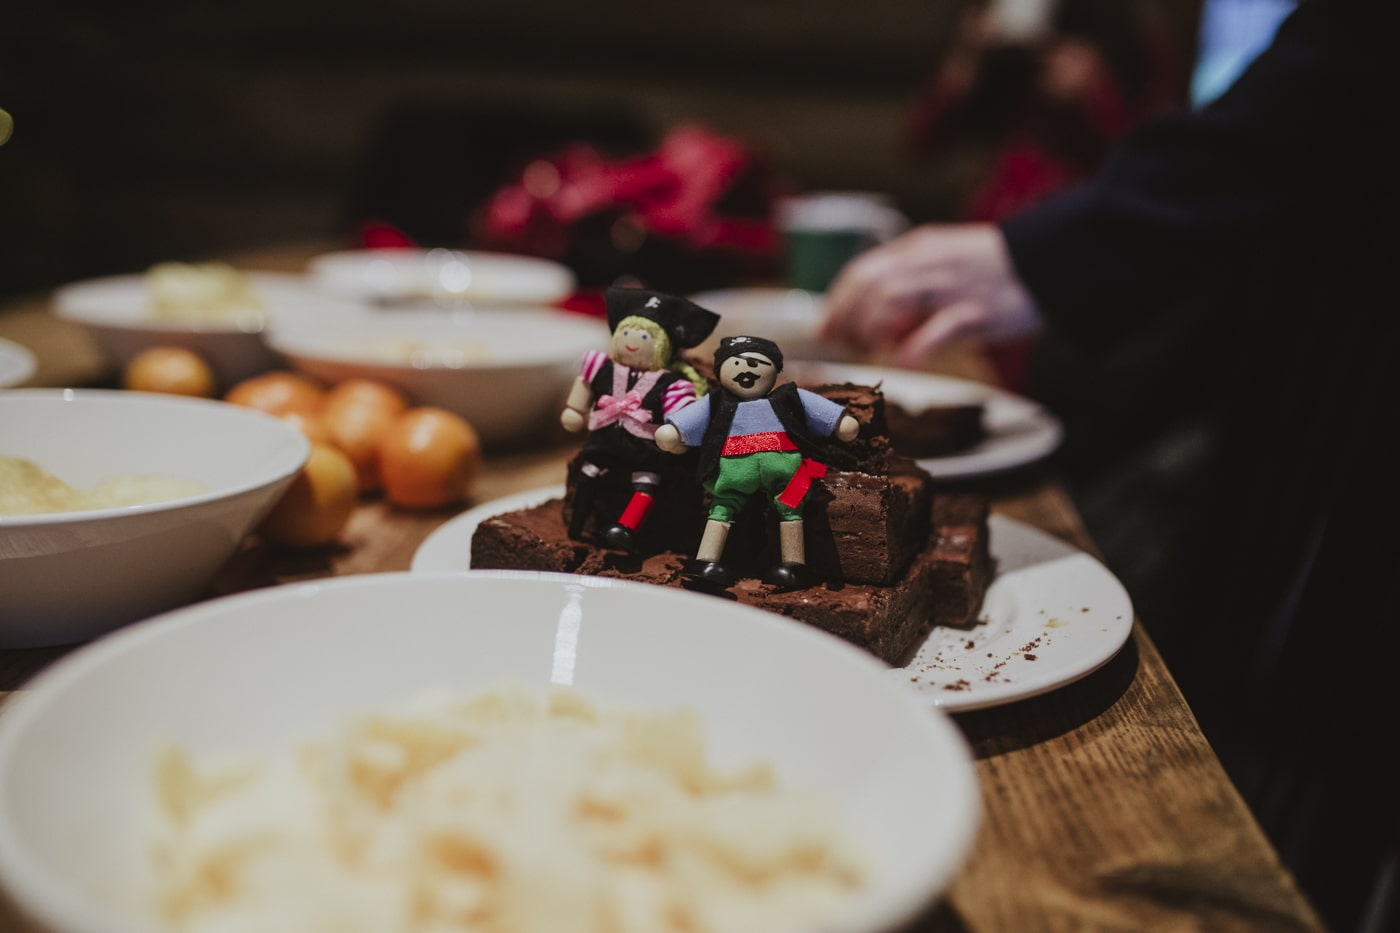 Pirate dolls on brownies by Joshua Wyborn